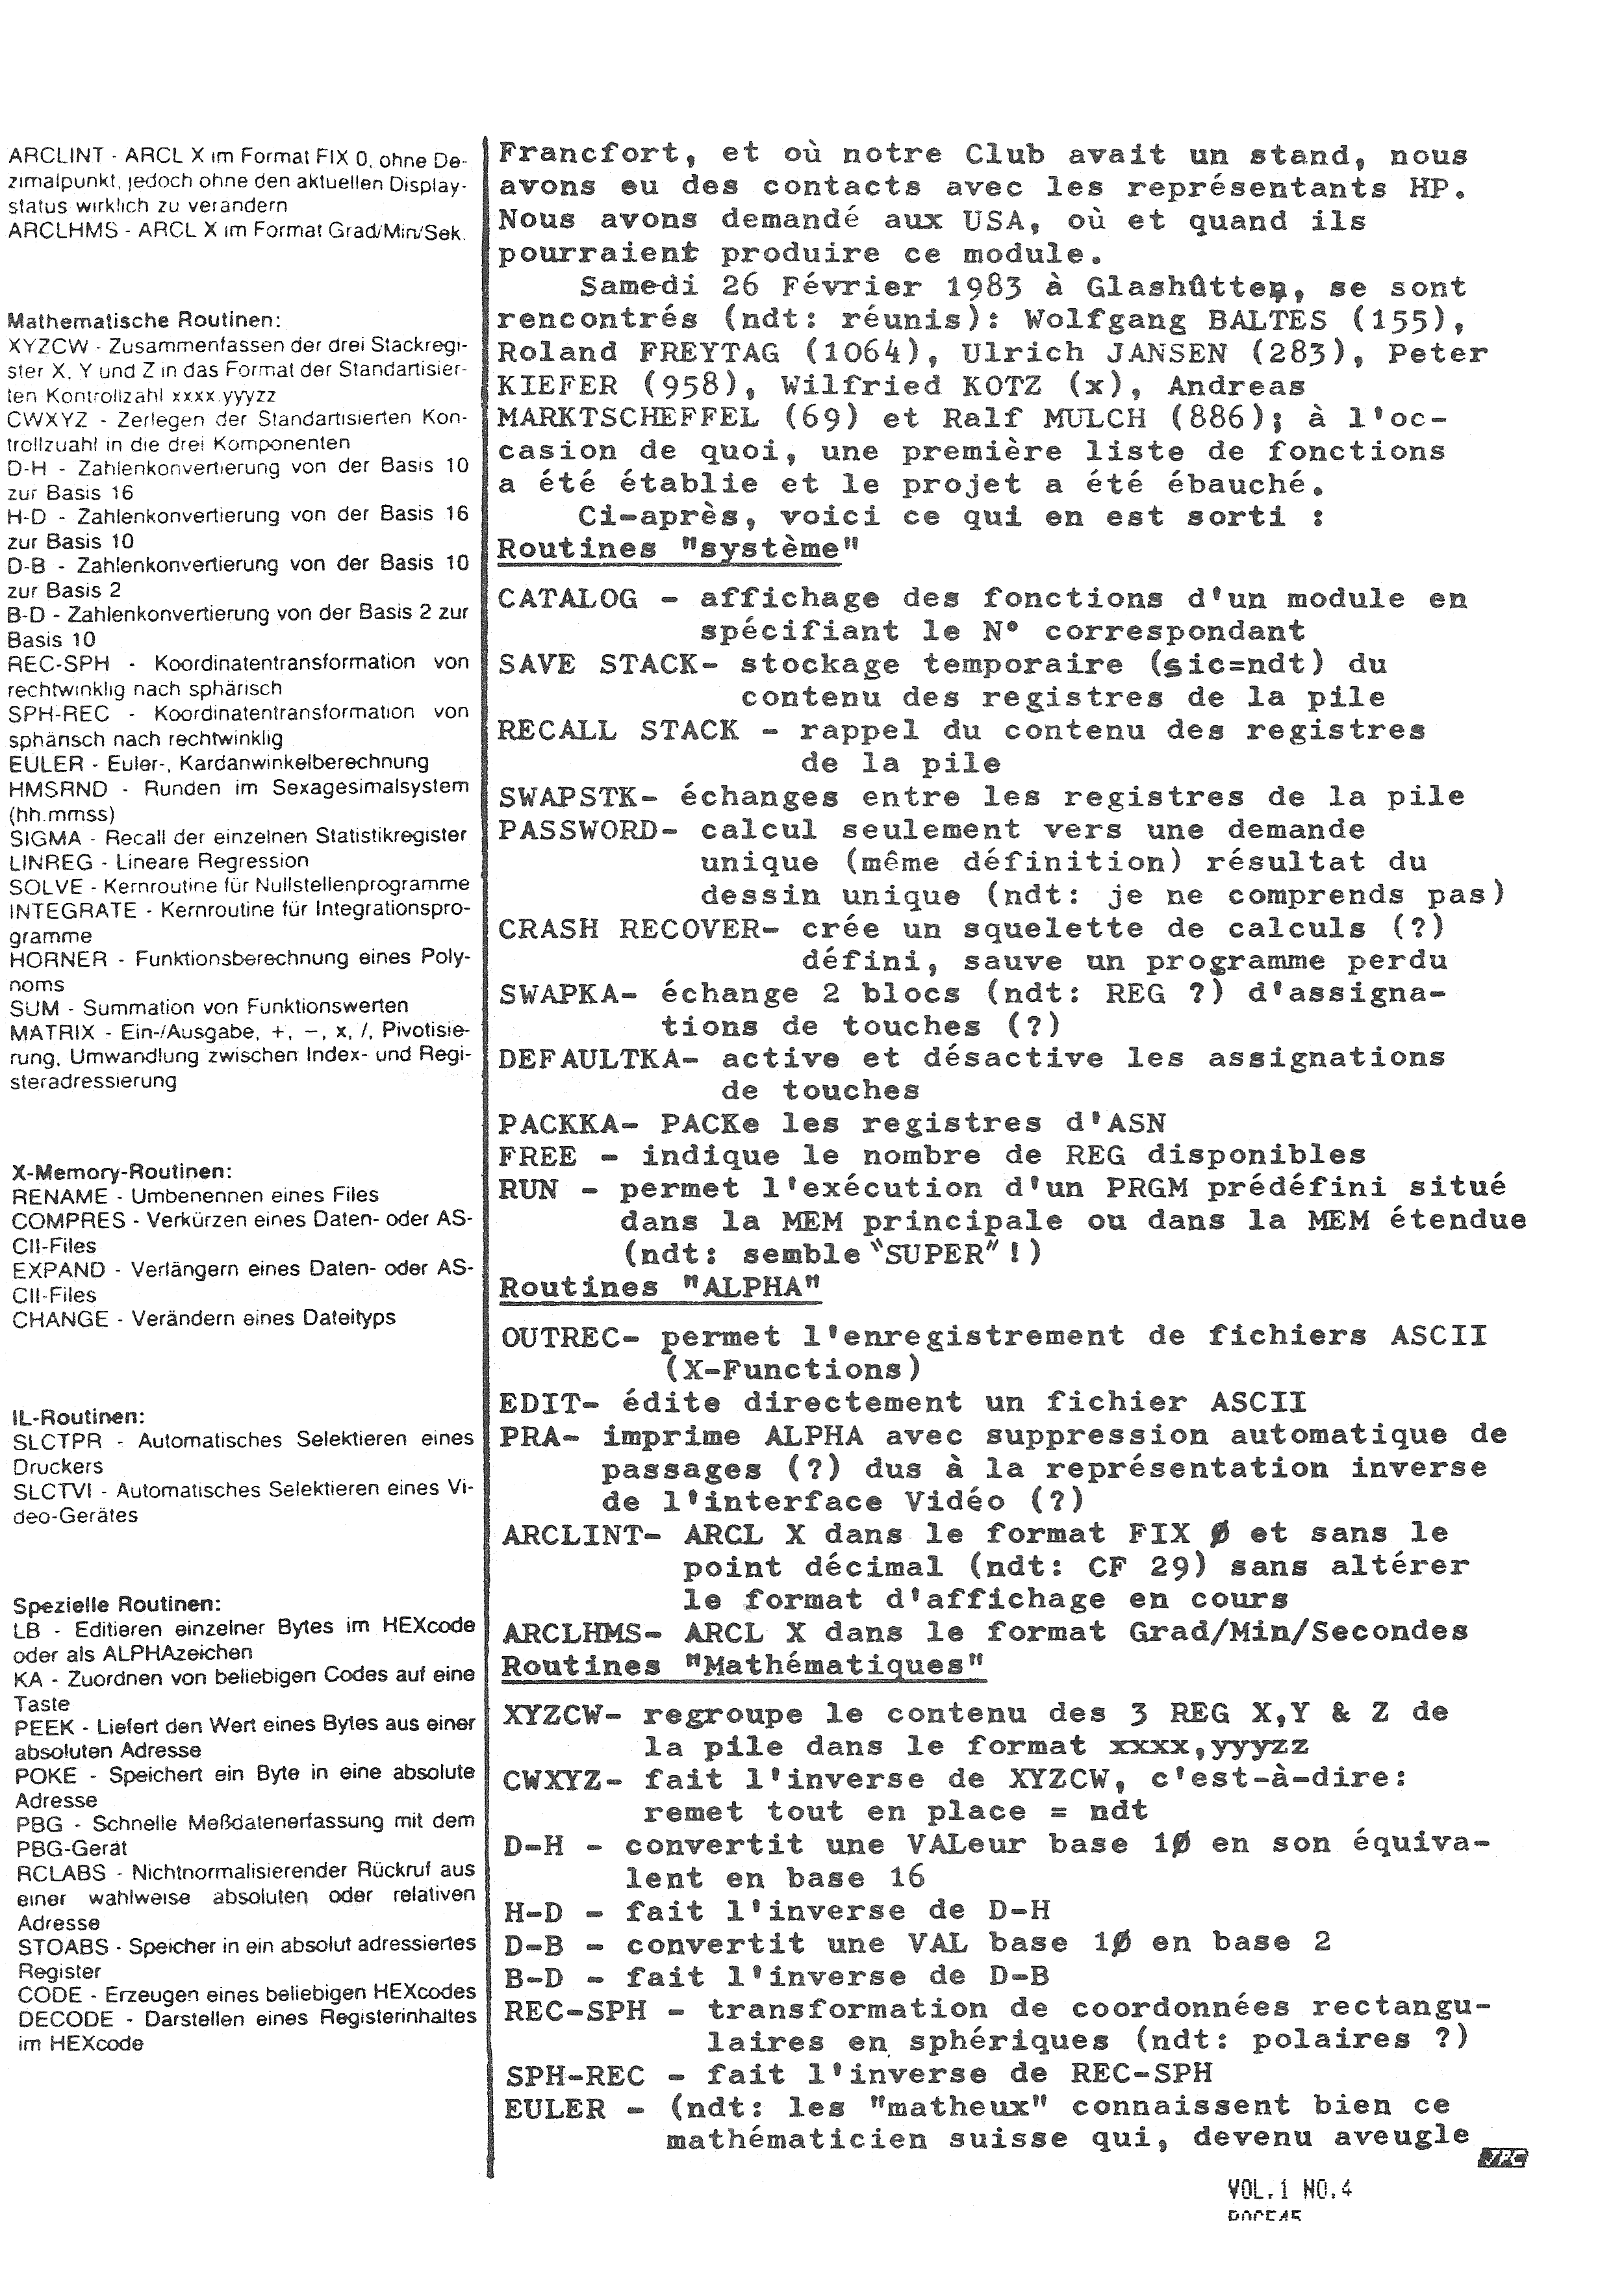 Jp-4-page-45-1000